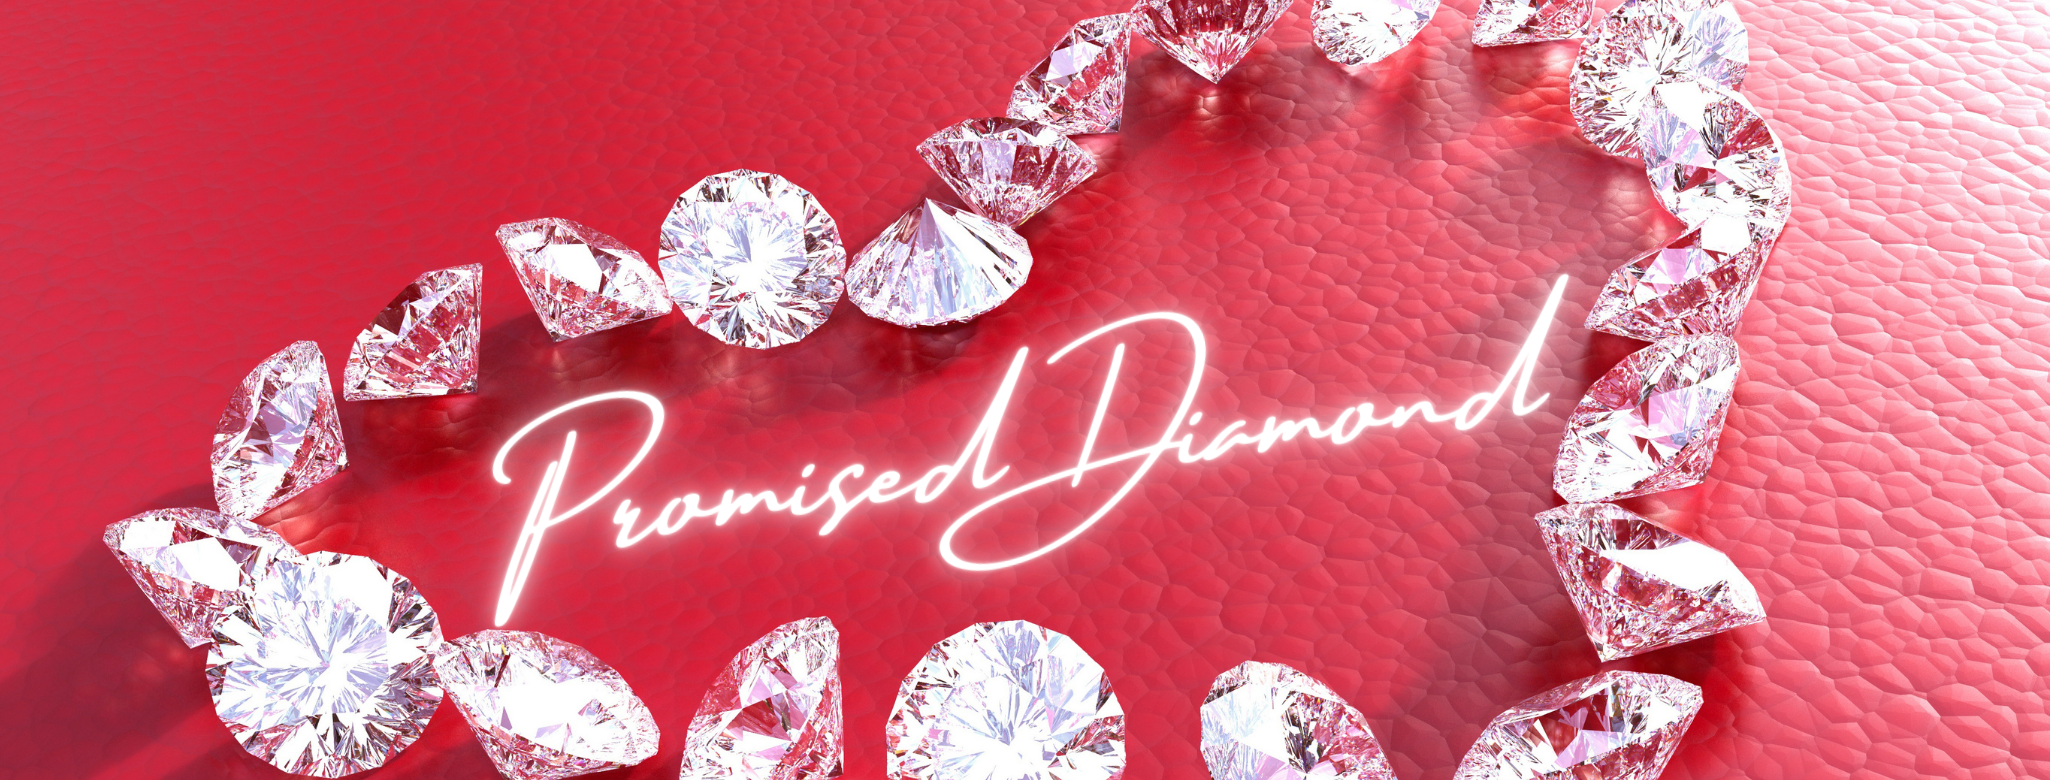 Promised Diamondのコピー (1)